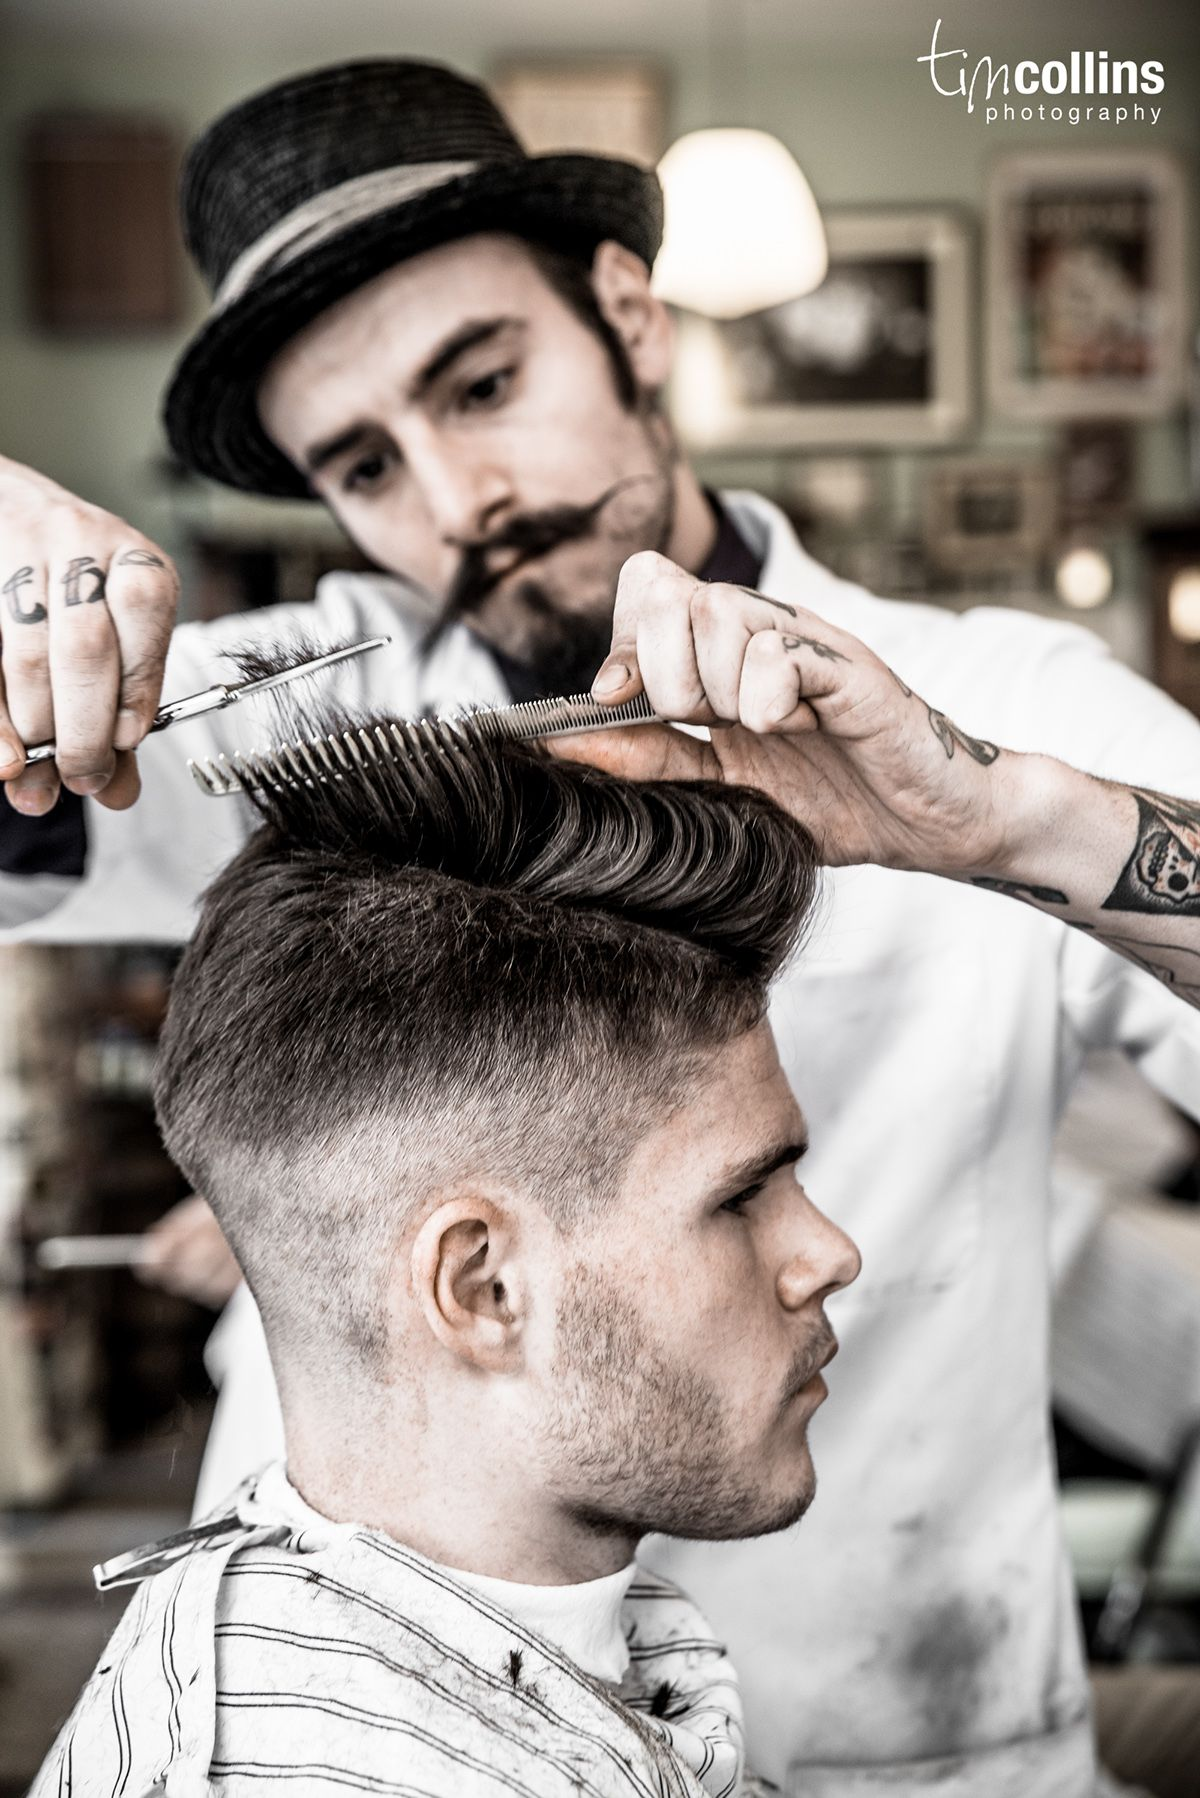 I Spent A Full Day In Schorem Barber Shop In Rotterdam I D Seen Photos Of The Place But I D Never Been In Th Haircuts For Men Barber Shop Pictures Barber Shop